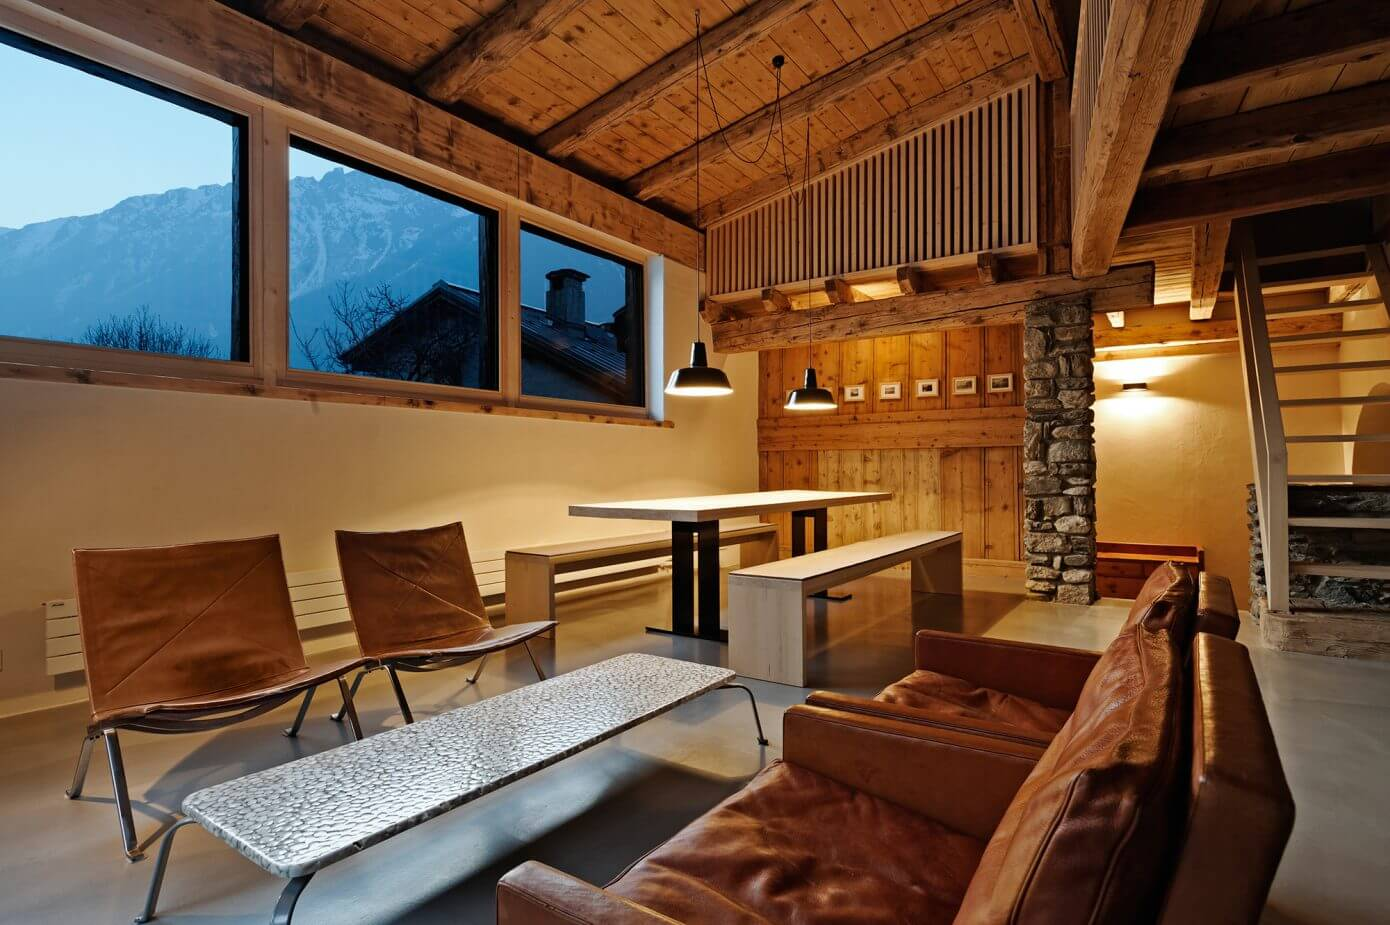 Renovated farmhouse in Chamonix - modern vacation house